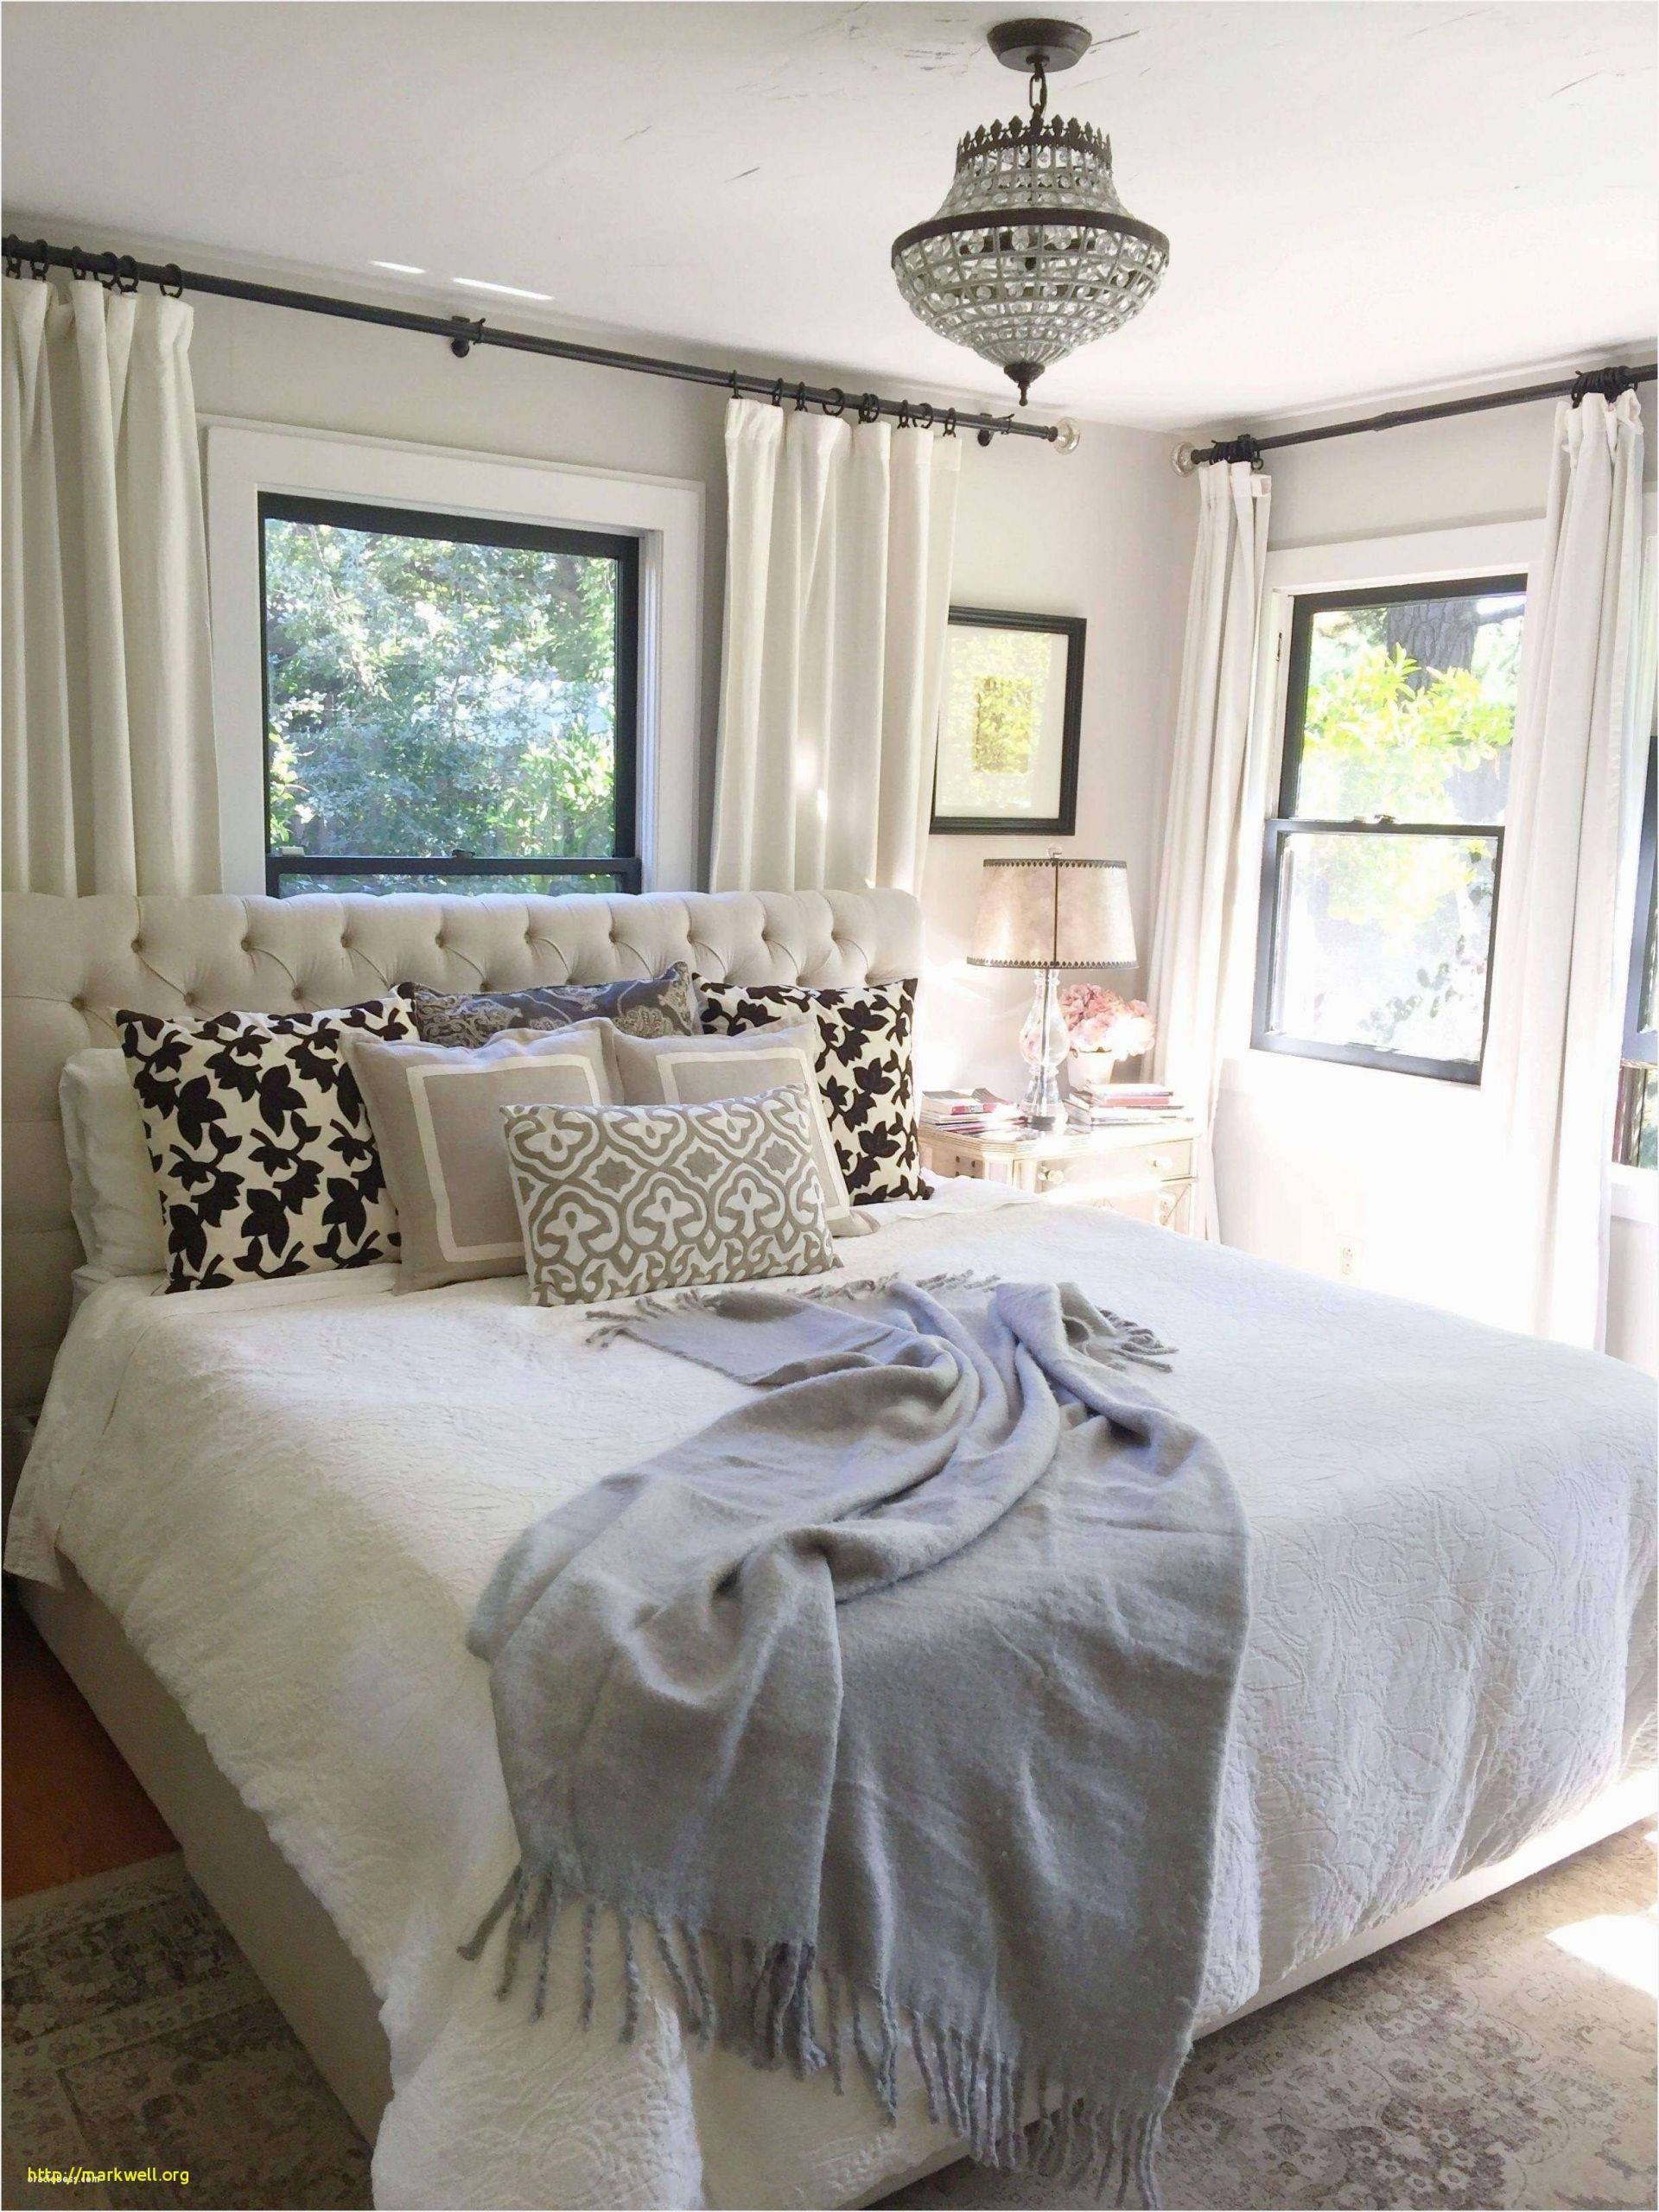 small bedroom chairs with arms fresh deco bedroom my tech your web of small bedroom chairs with arms